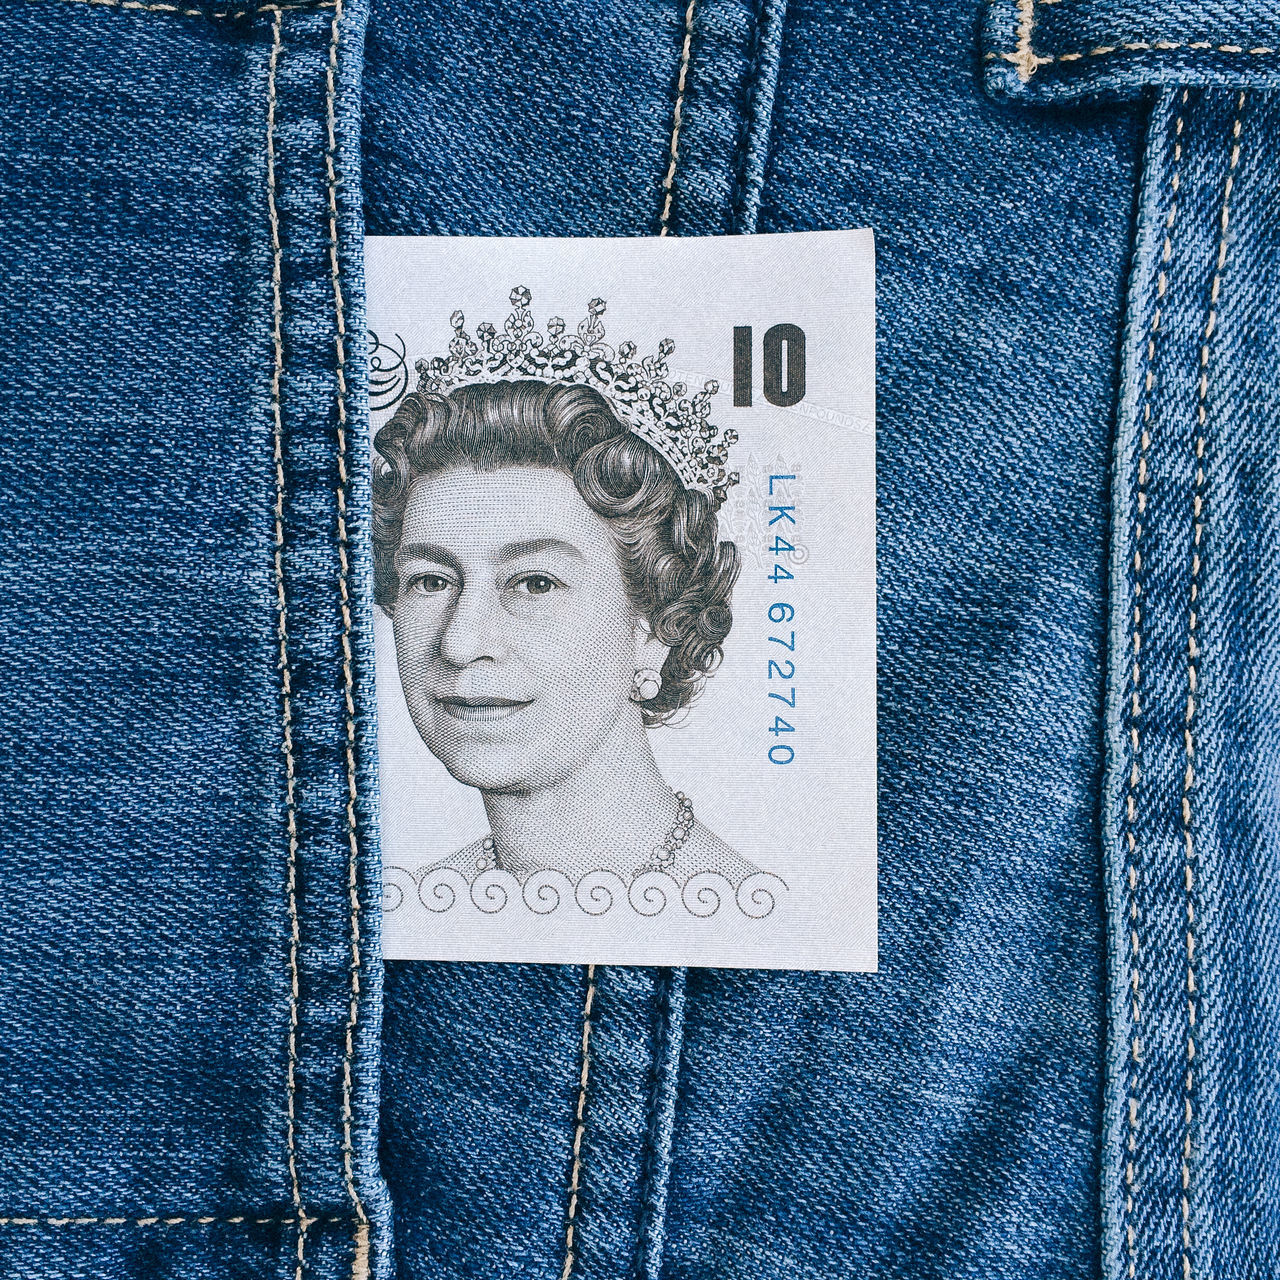 British 10 pound note protruding from pocket of blue denim jeans 10 10 Pound Note British Cash Currency Denim Jeans Legal Tender Material Money Note Pocket  Pocket Money Pounds Protruding Queen Queen Elizabeth  Queens Head Symbol Ten Pound Note Uk